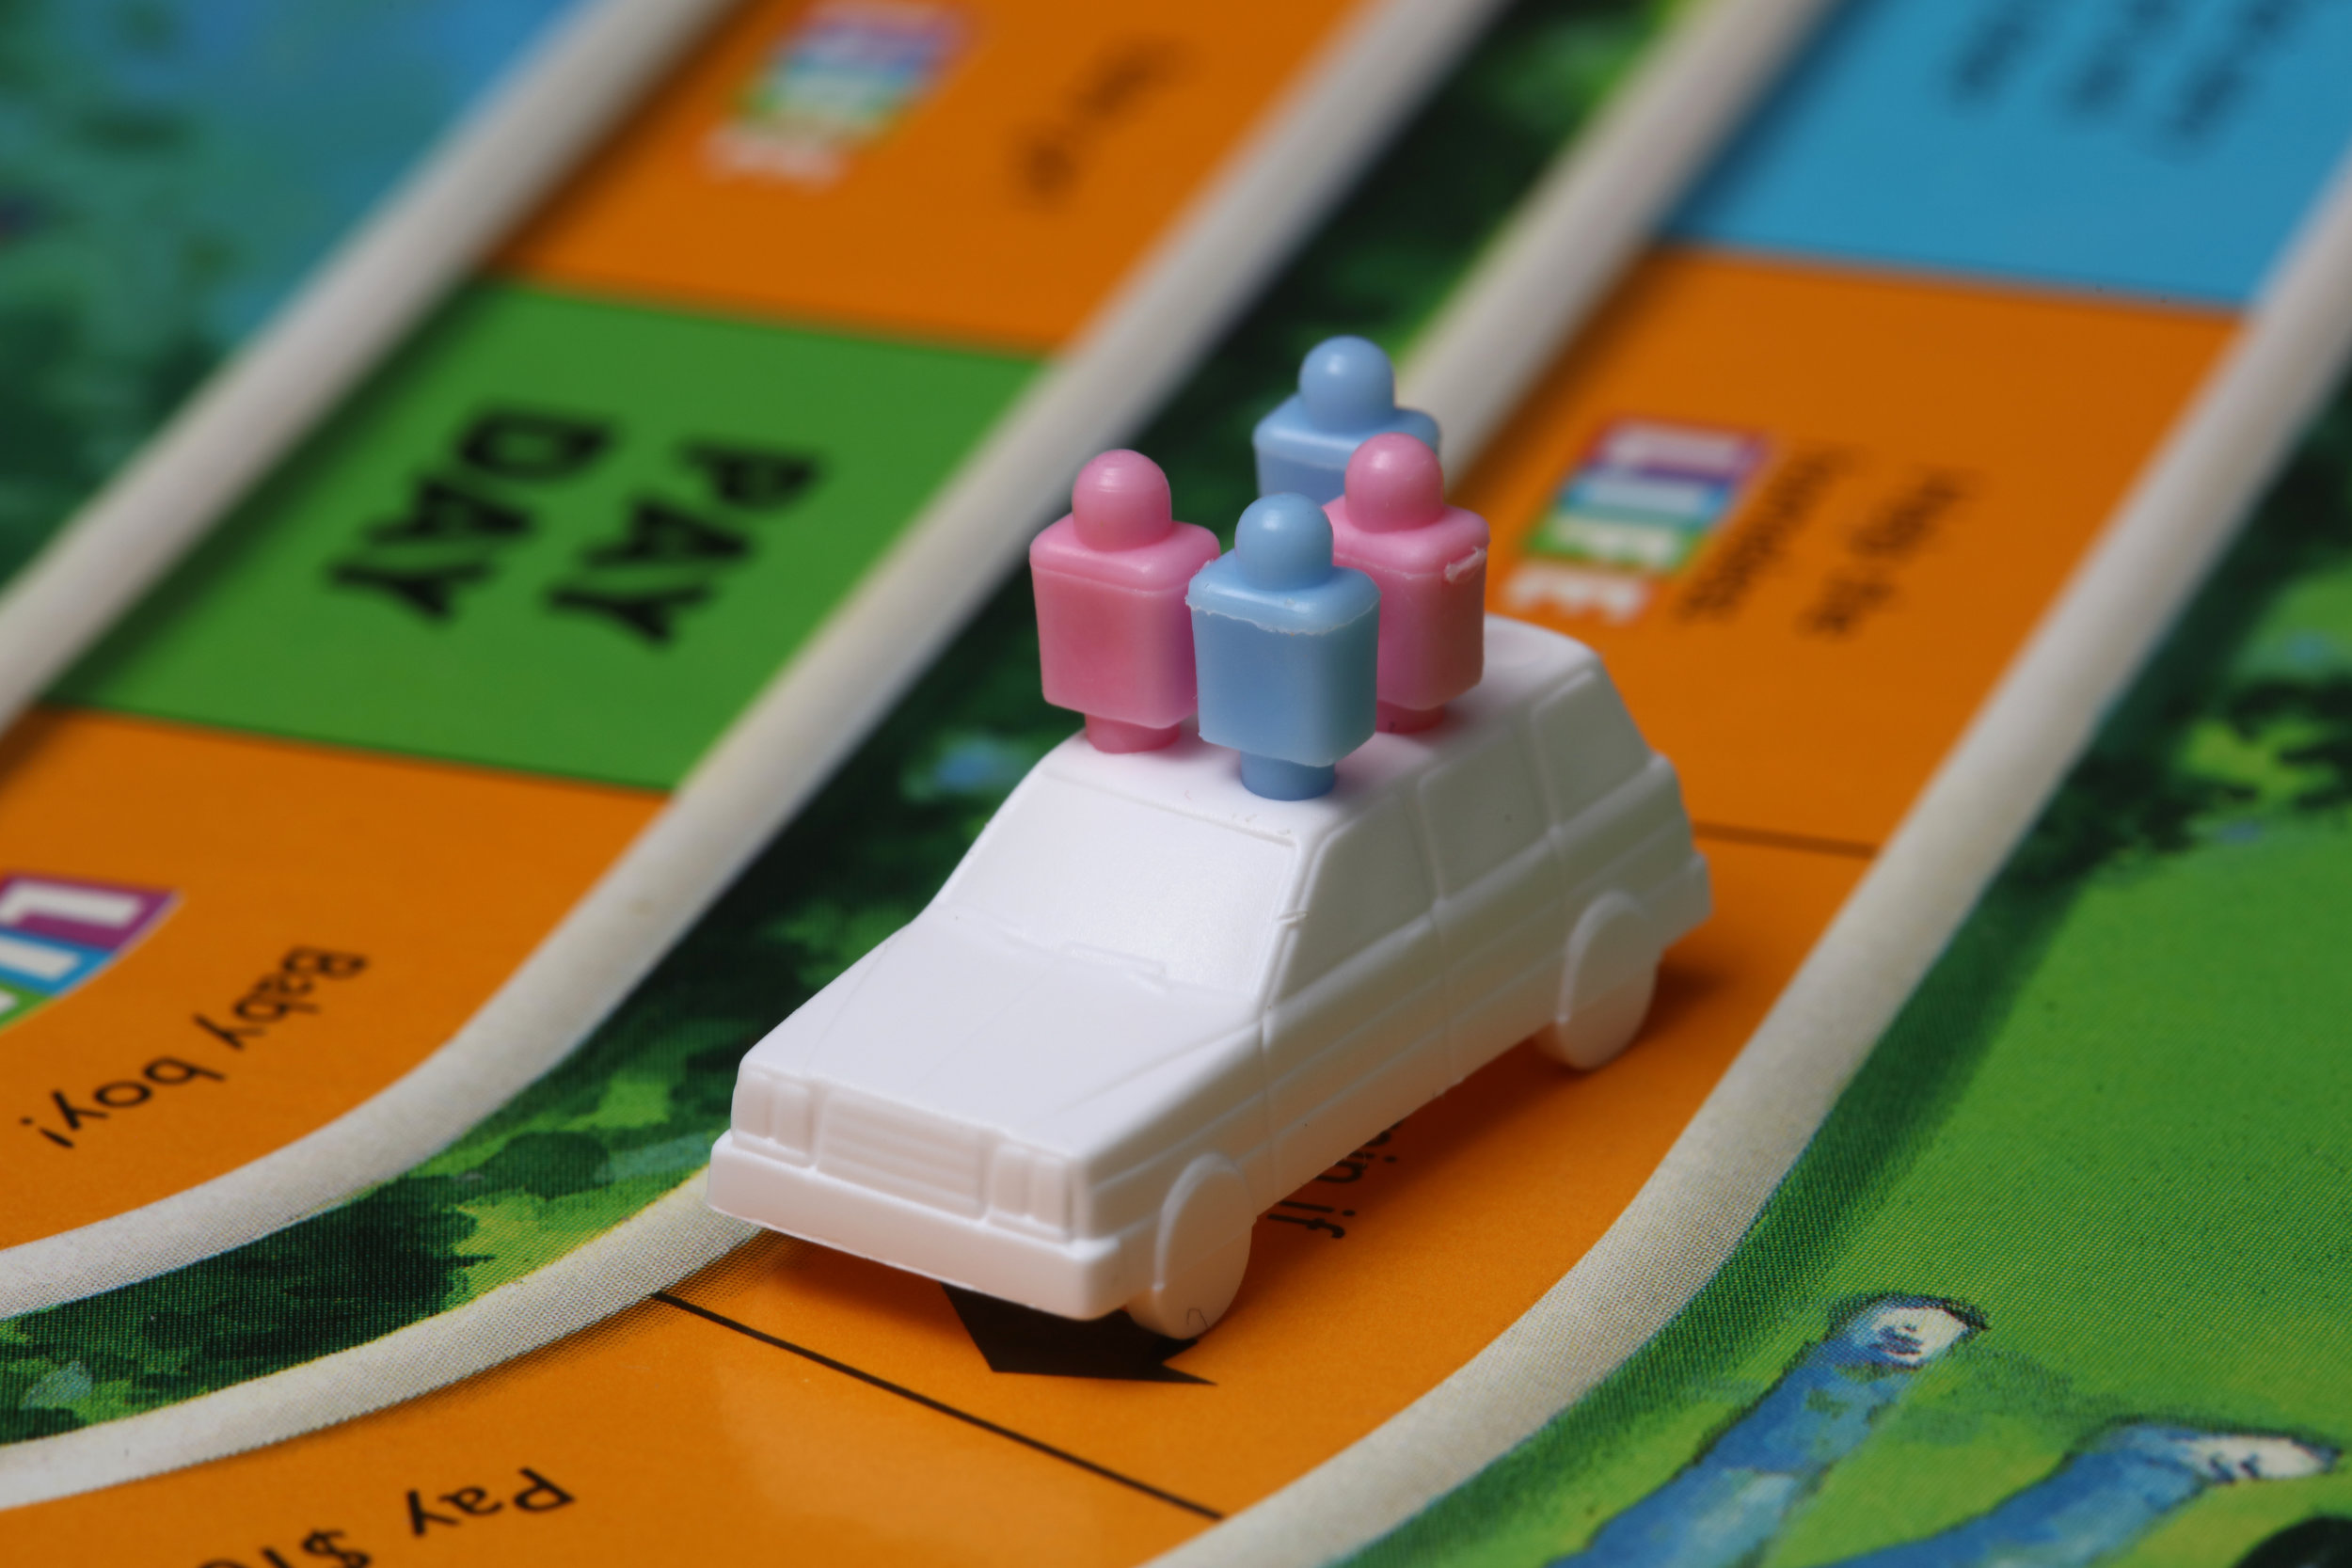 close up photo of a car board game piece